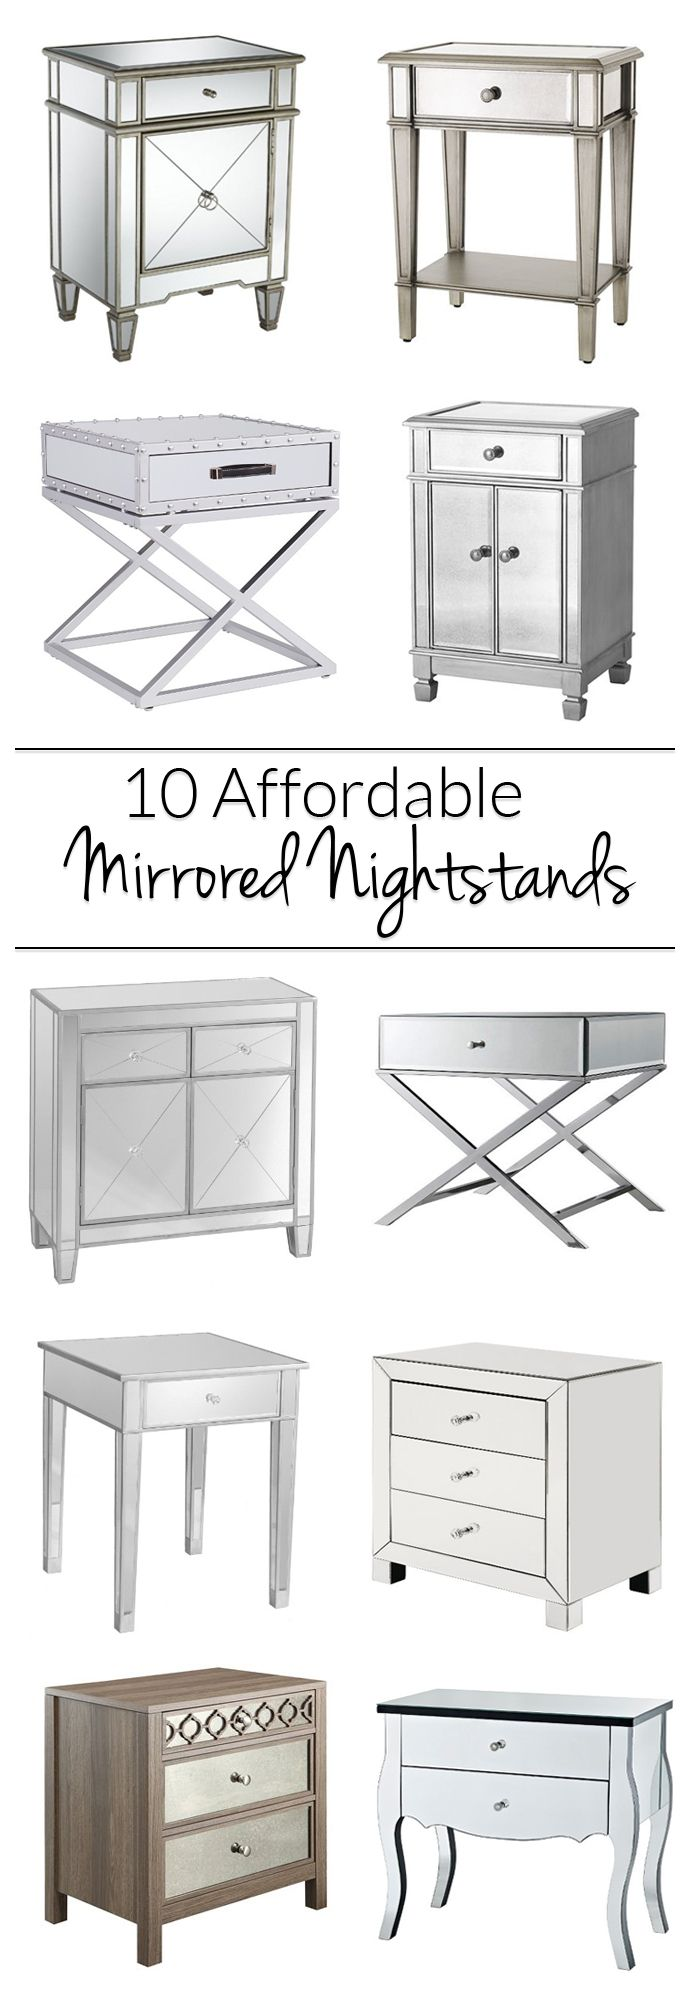 mirrored nightstands 10 cheap options nightstands ranges and bedrooms